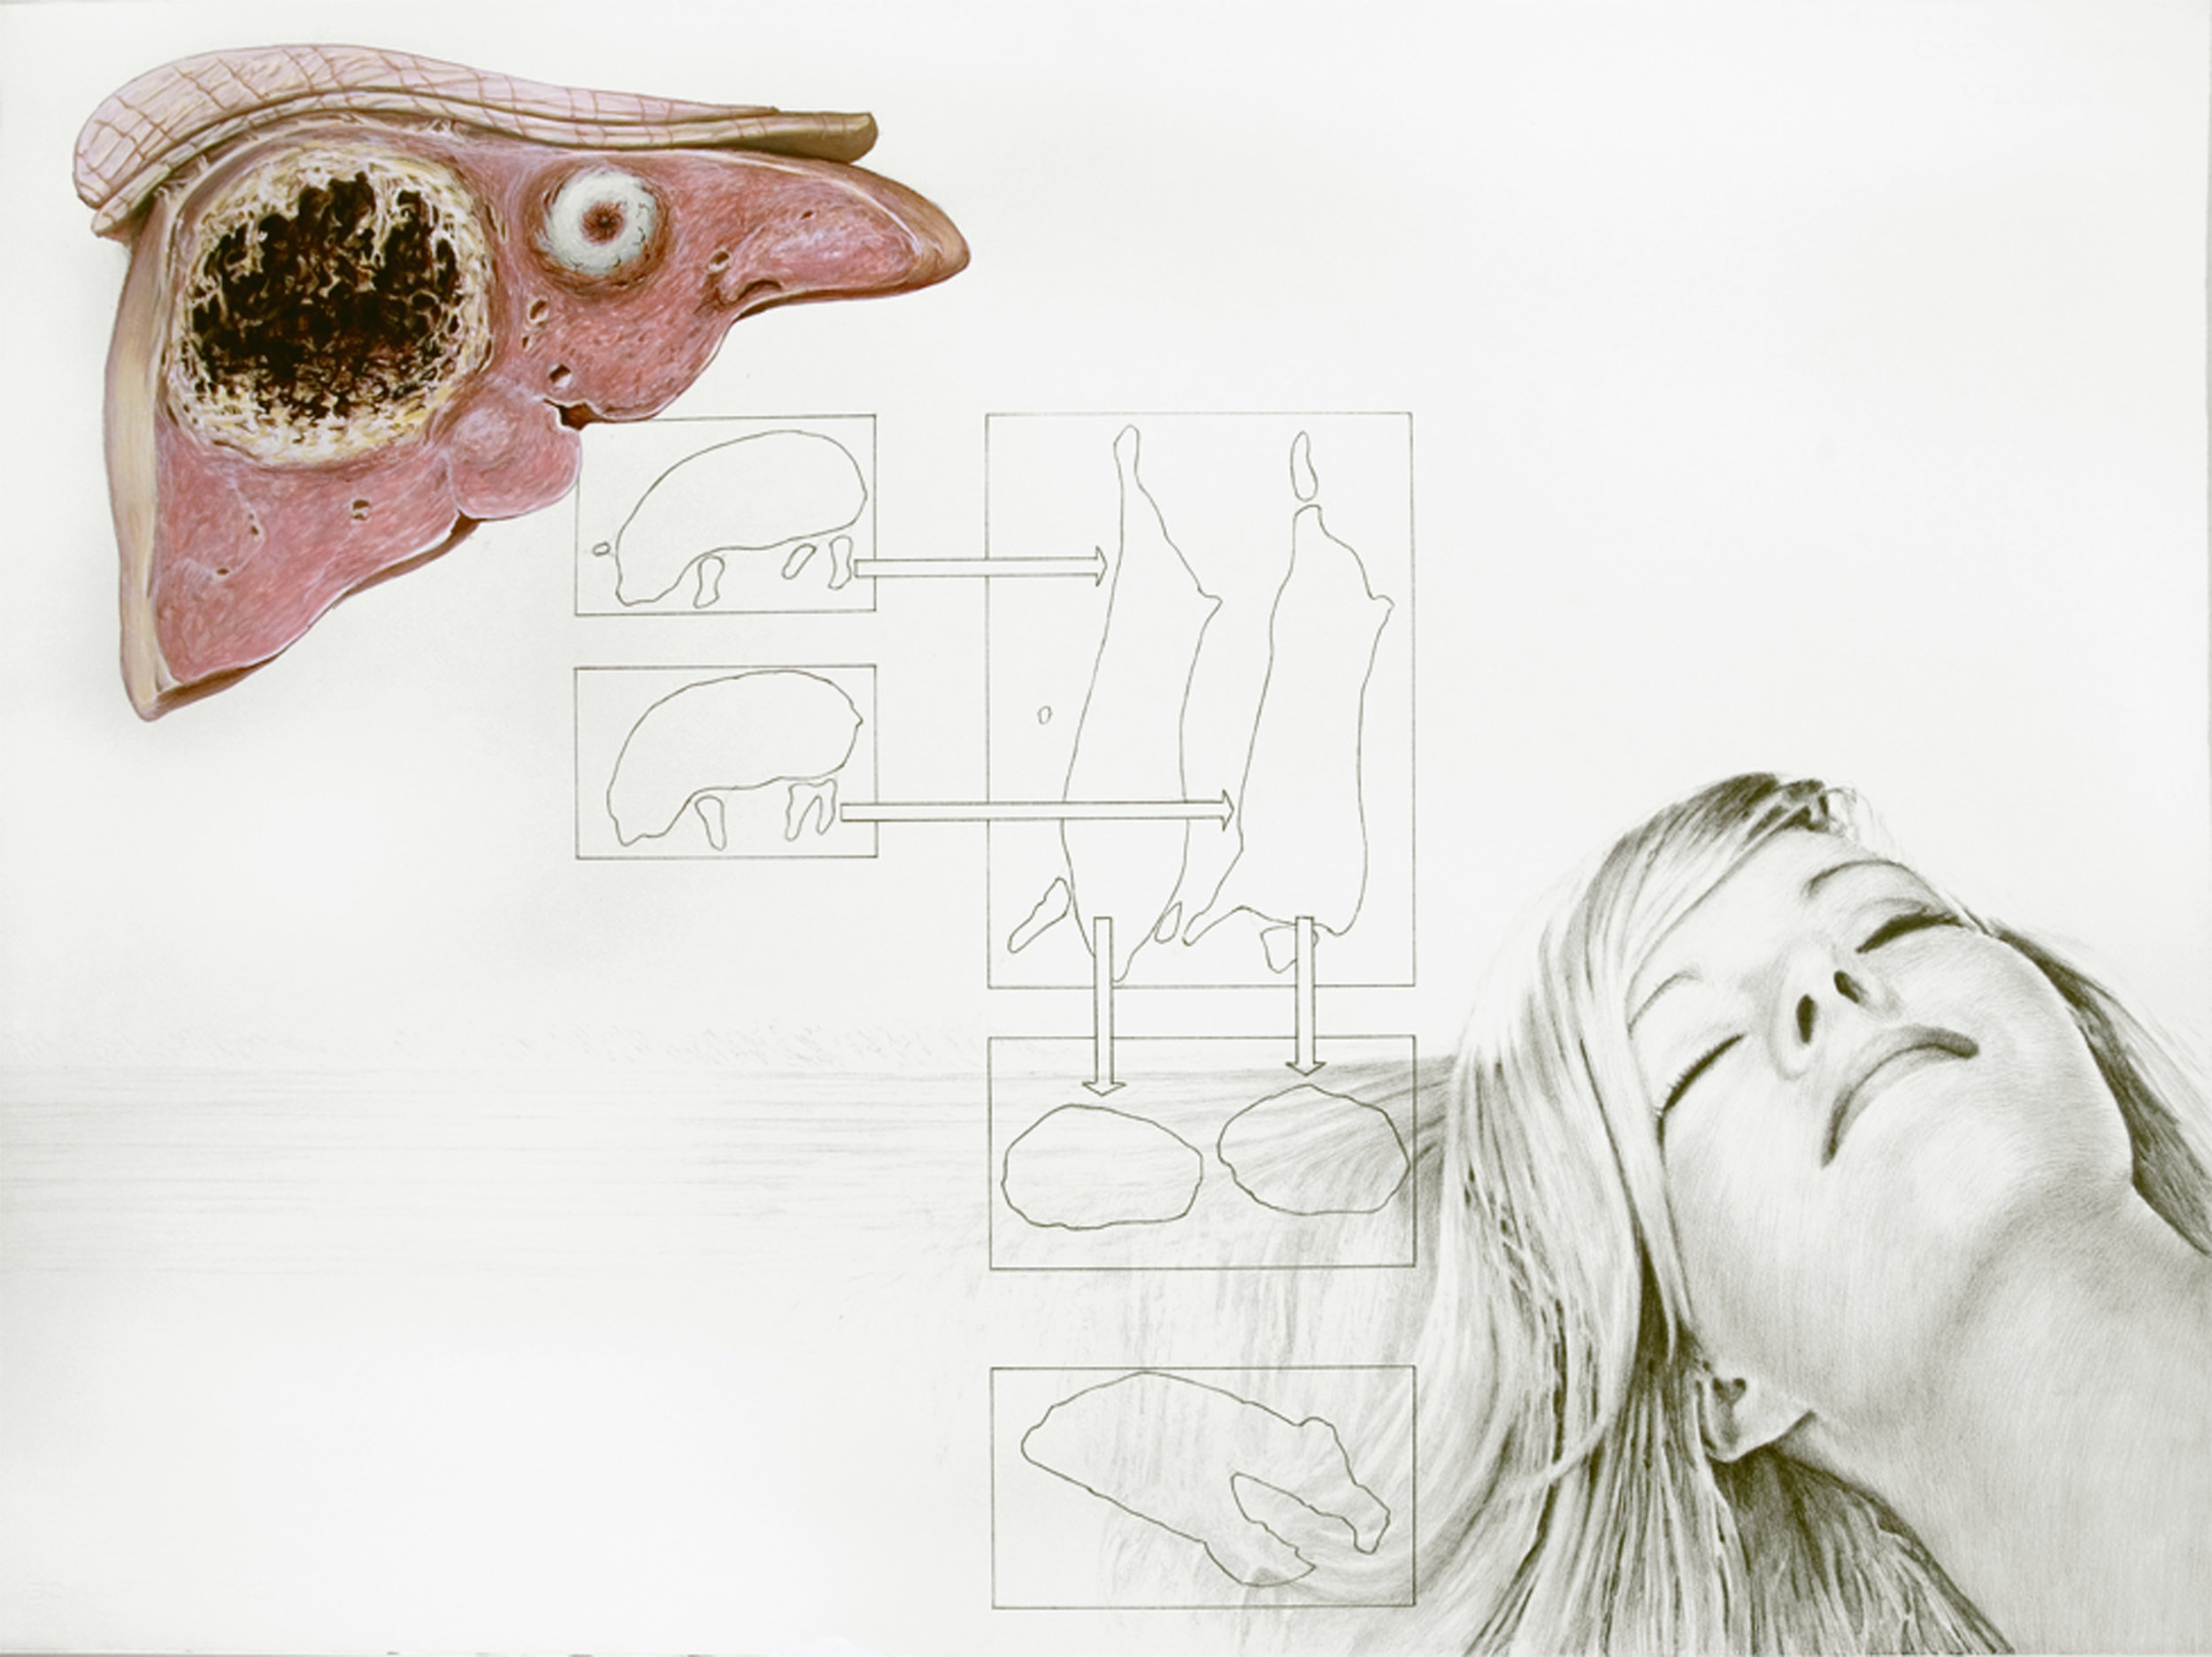 Anatomy Weird-ohs (Liverman, Woman's Hair & Meat Chart), 2011 gouache, pencil and watercolor on paper 56,6 x 76,2 cm - 22 1/4 x 30 inches